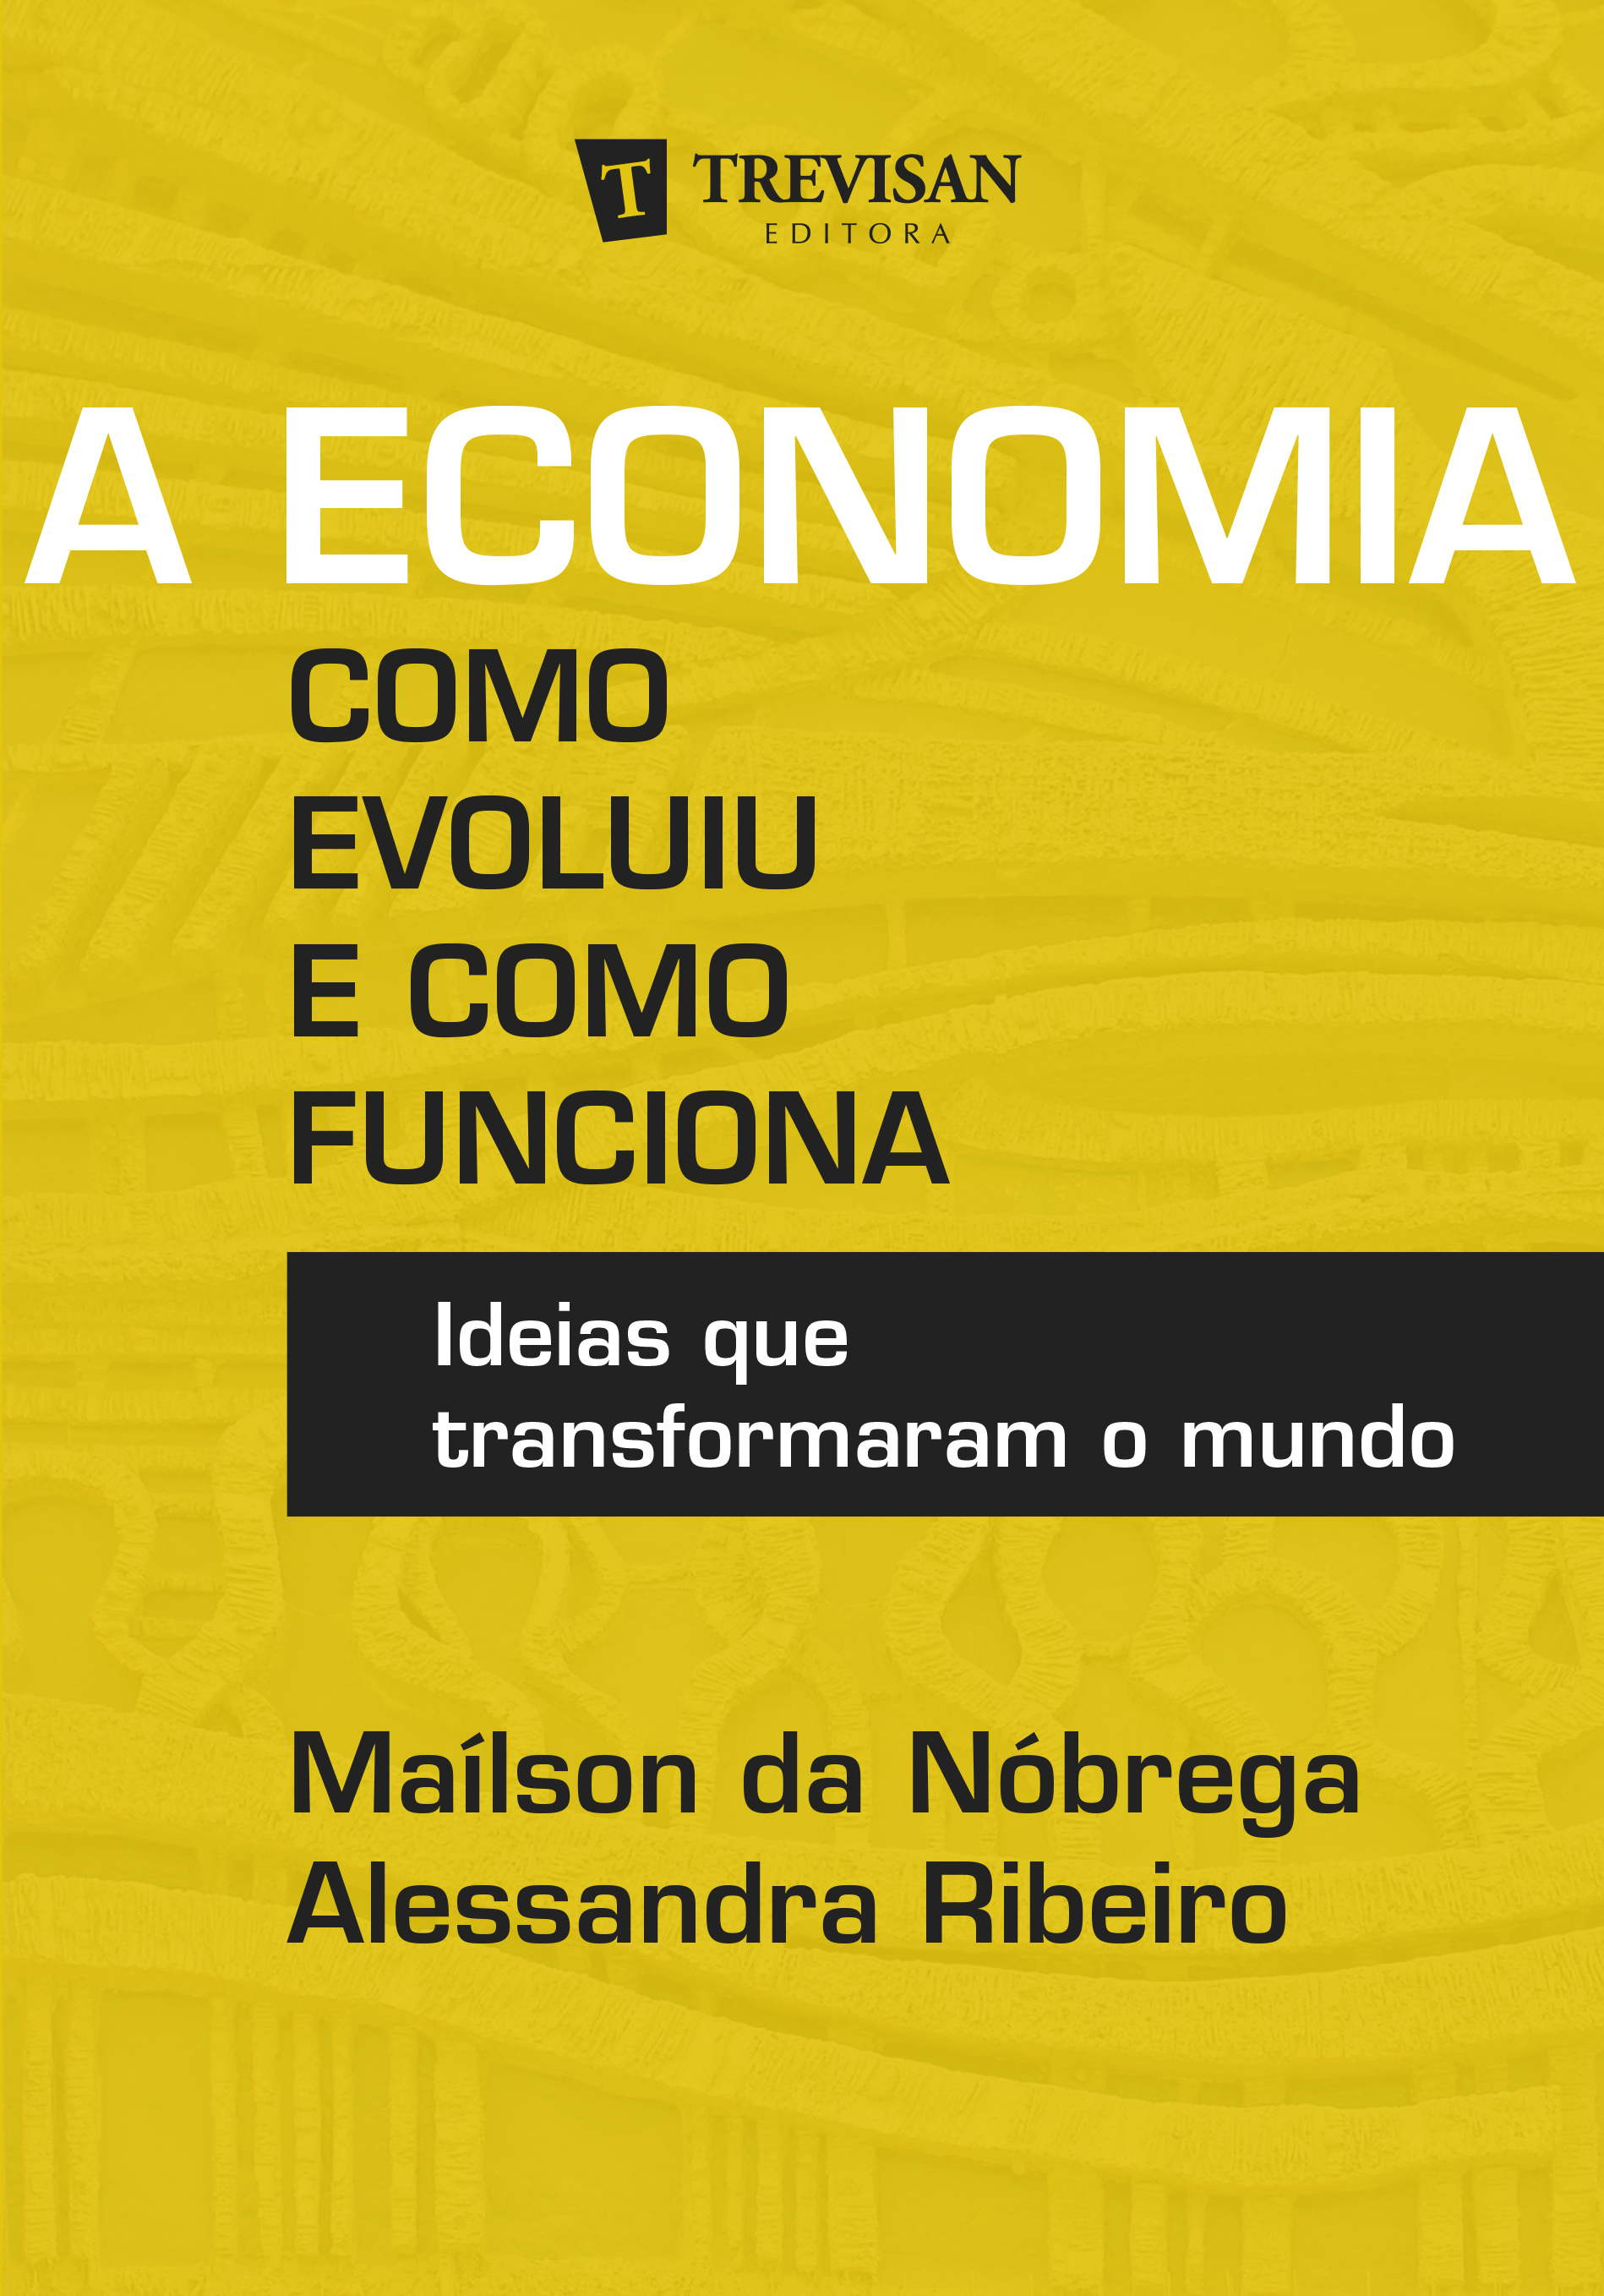 A Economia: como evoluiu  e como funciona - Ideias que transformaram o mundo